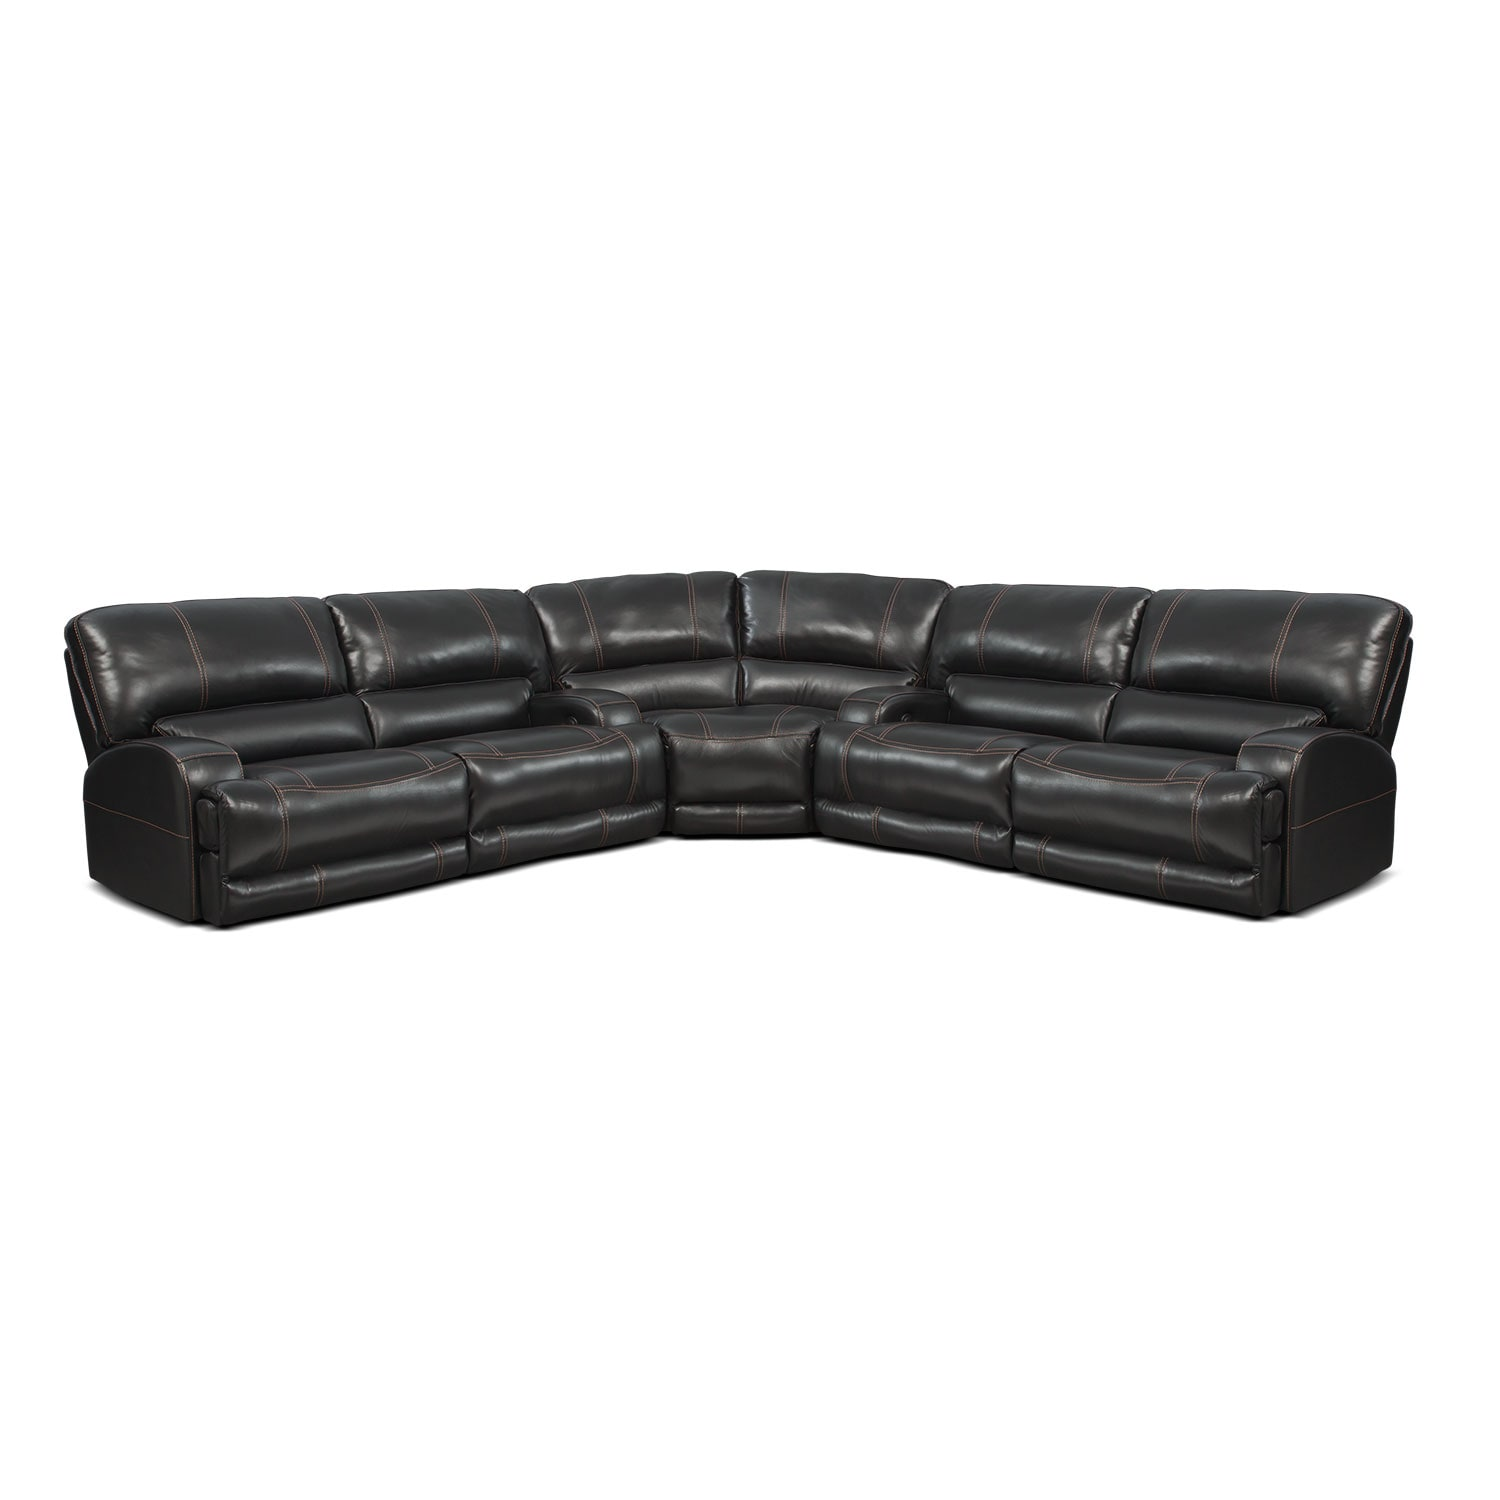 Living Room Furniture - Barton 3-Piece Power Reclining Sectional - Black